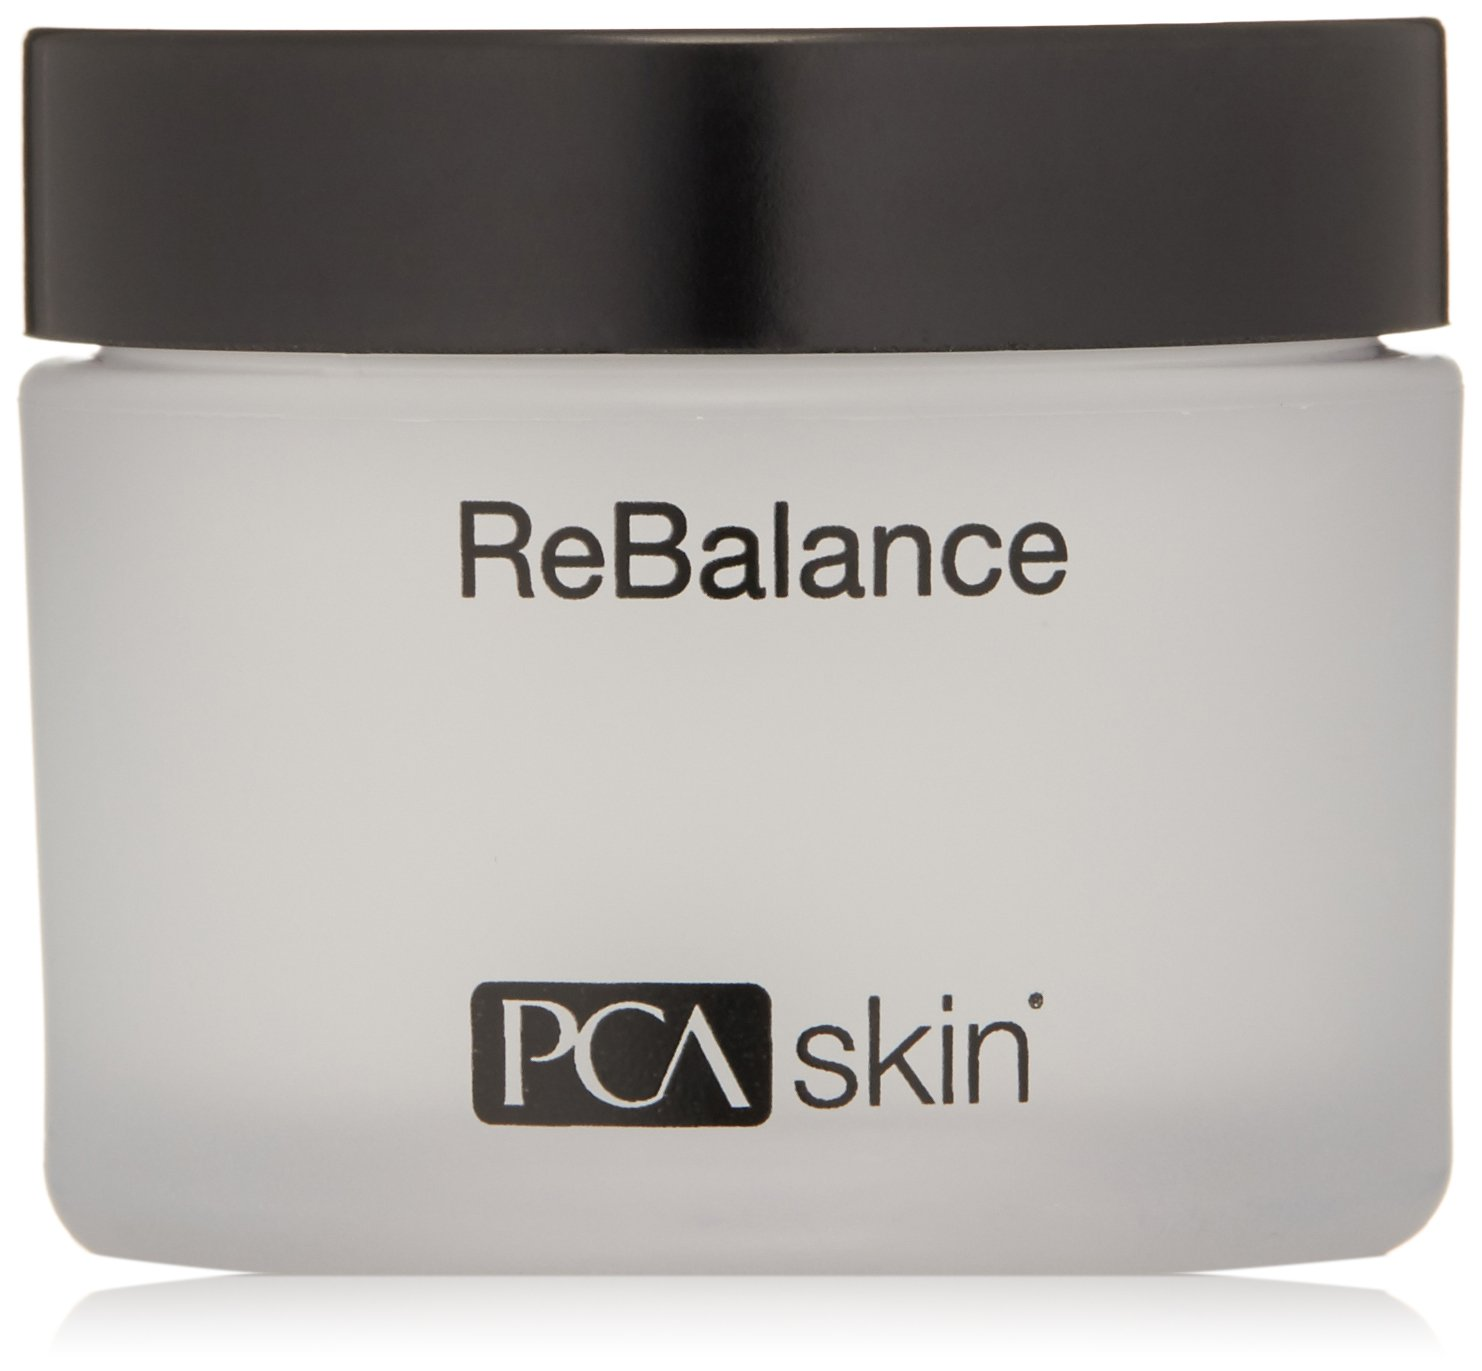 amazon com pca skin rebalance cream 1 7 fl oz luxury beauty